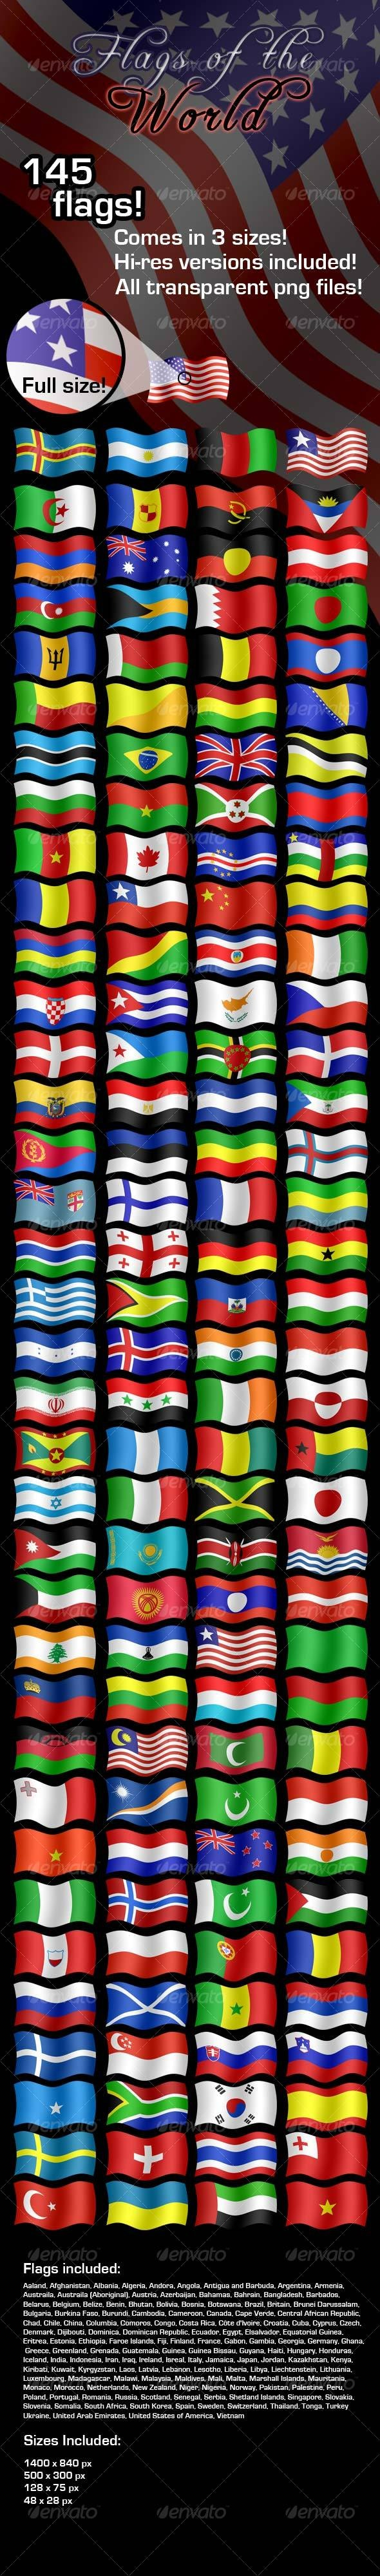 Flags of the World - Miscellaneous Icons